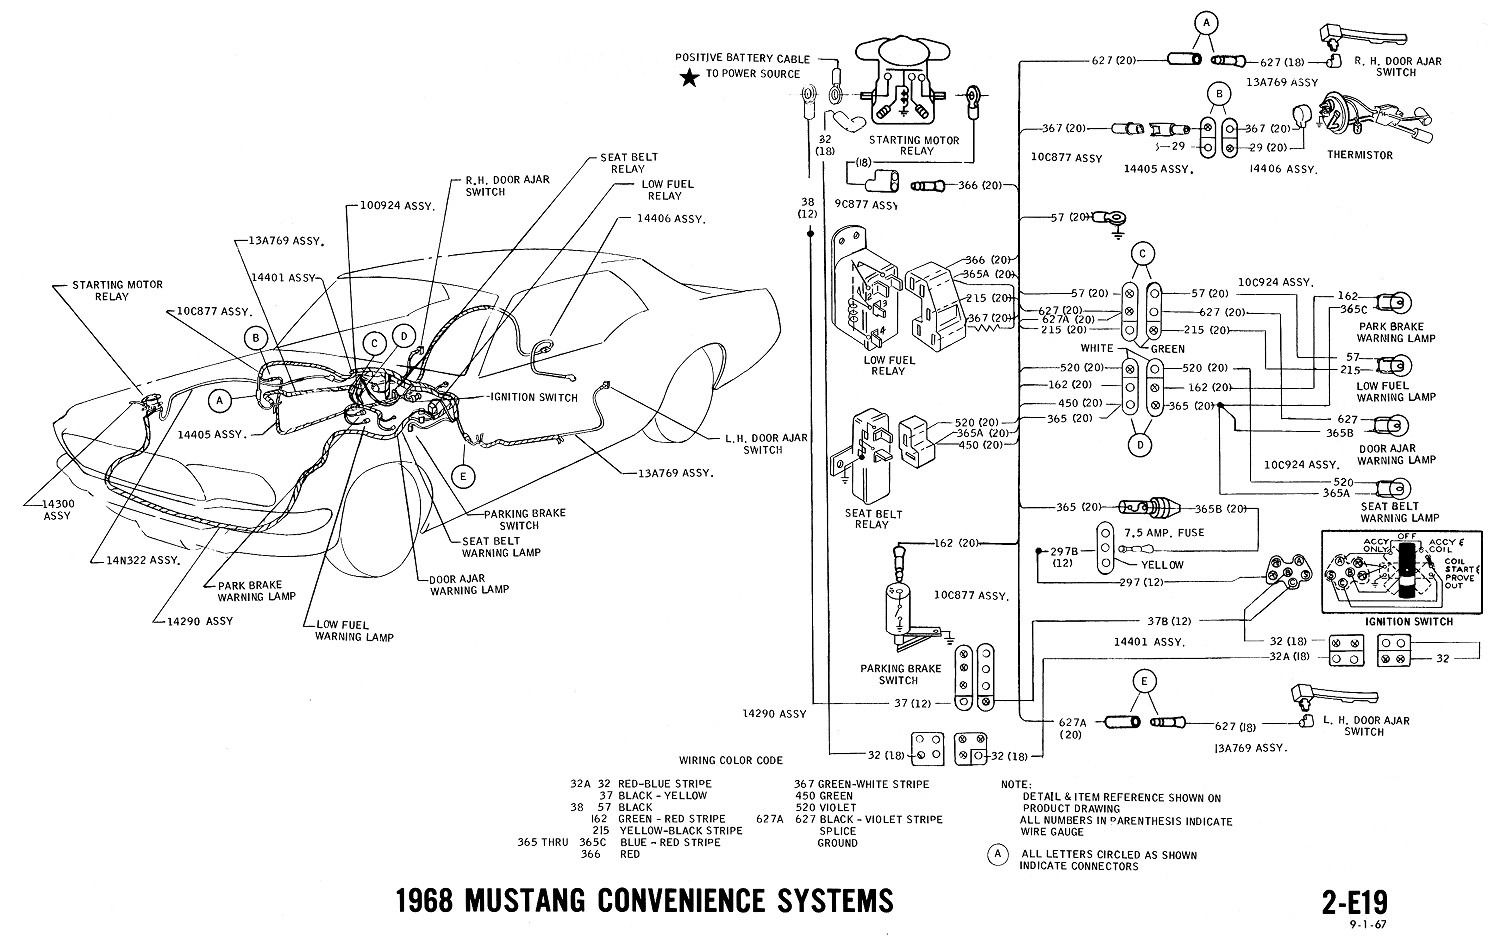 Astonishing 68 Mustang Wiring Diagram Basic Electronics Wiring Diagram Wiring Cloud Onicaxeromohammedshrineorg